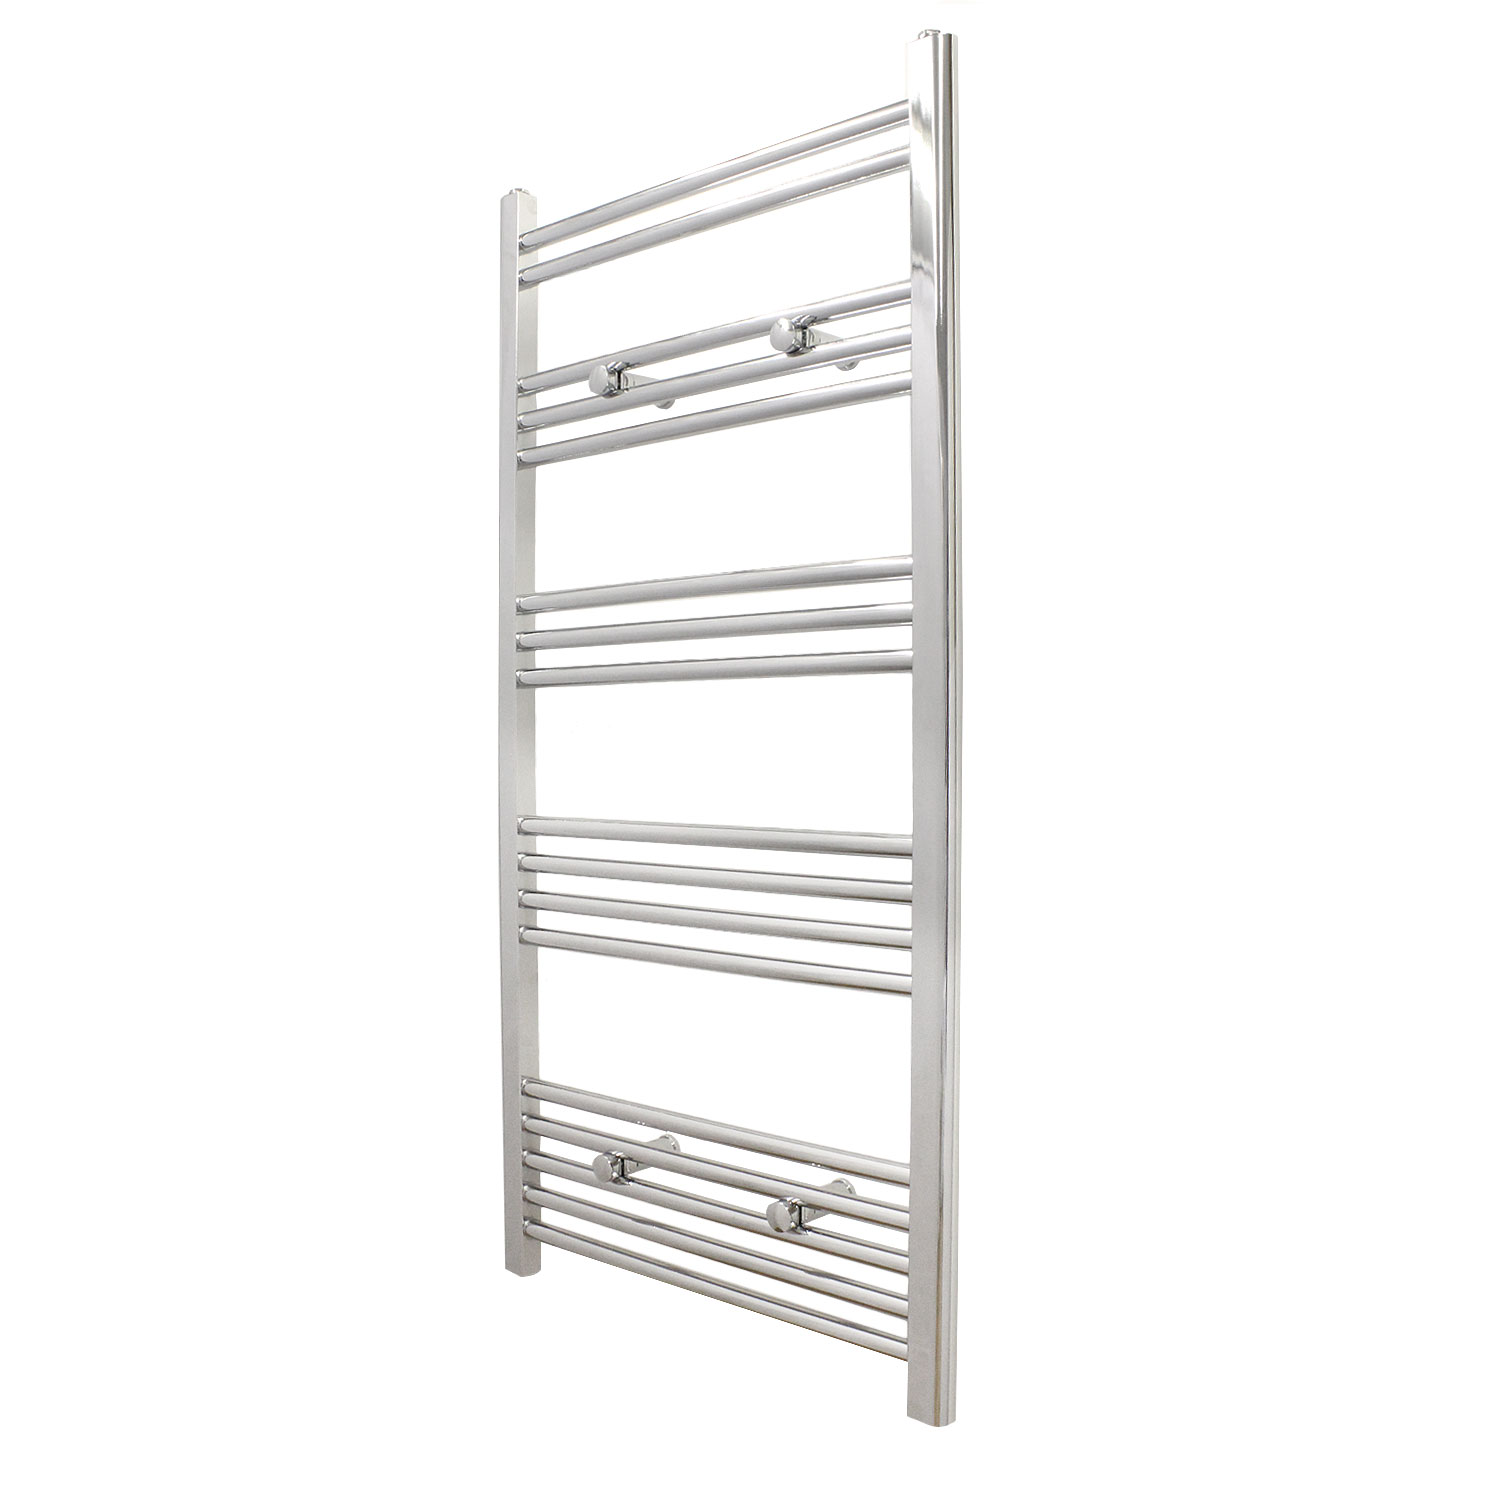 arian 1200 x 600mm straight central heated or electric bathroom towel warmer radiator